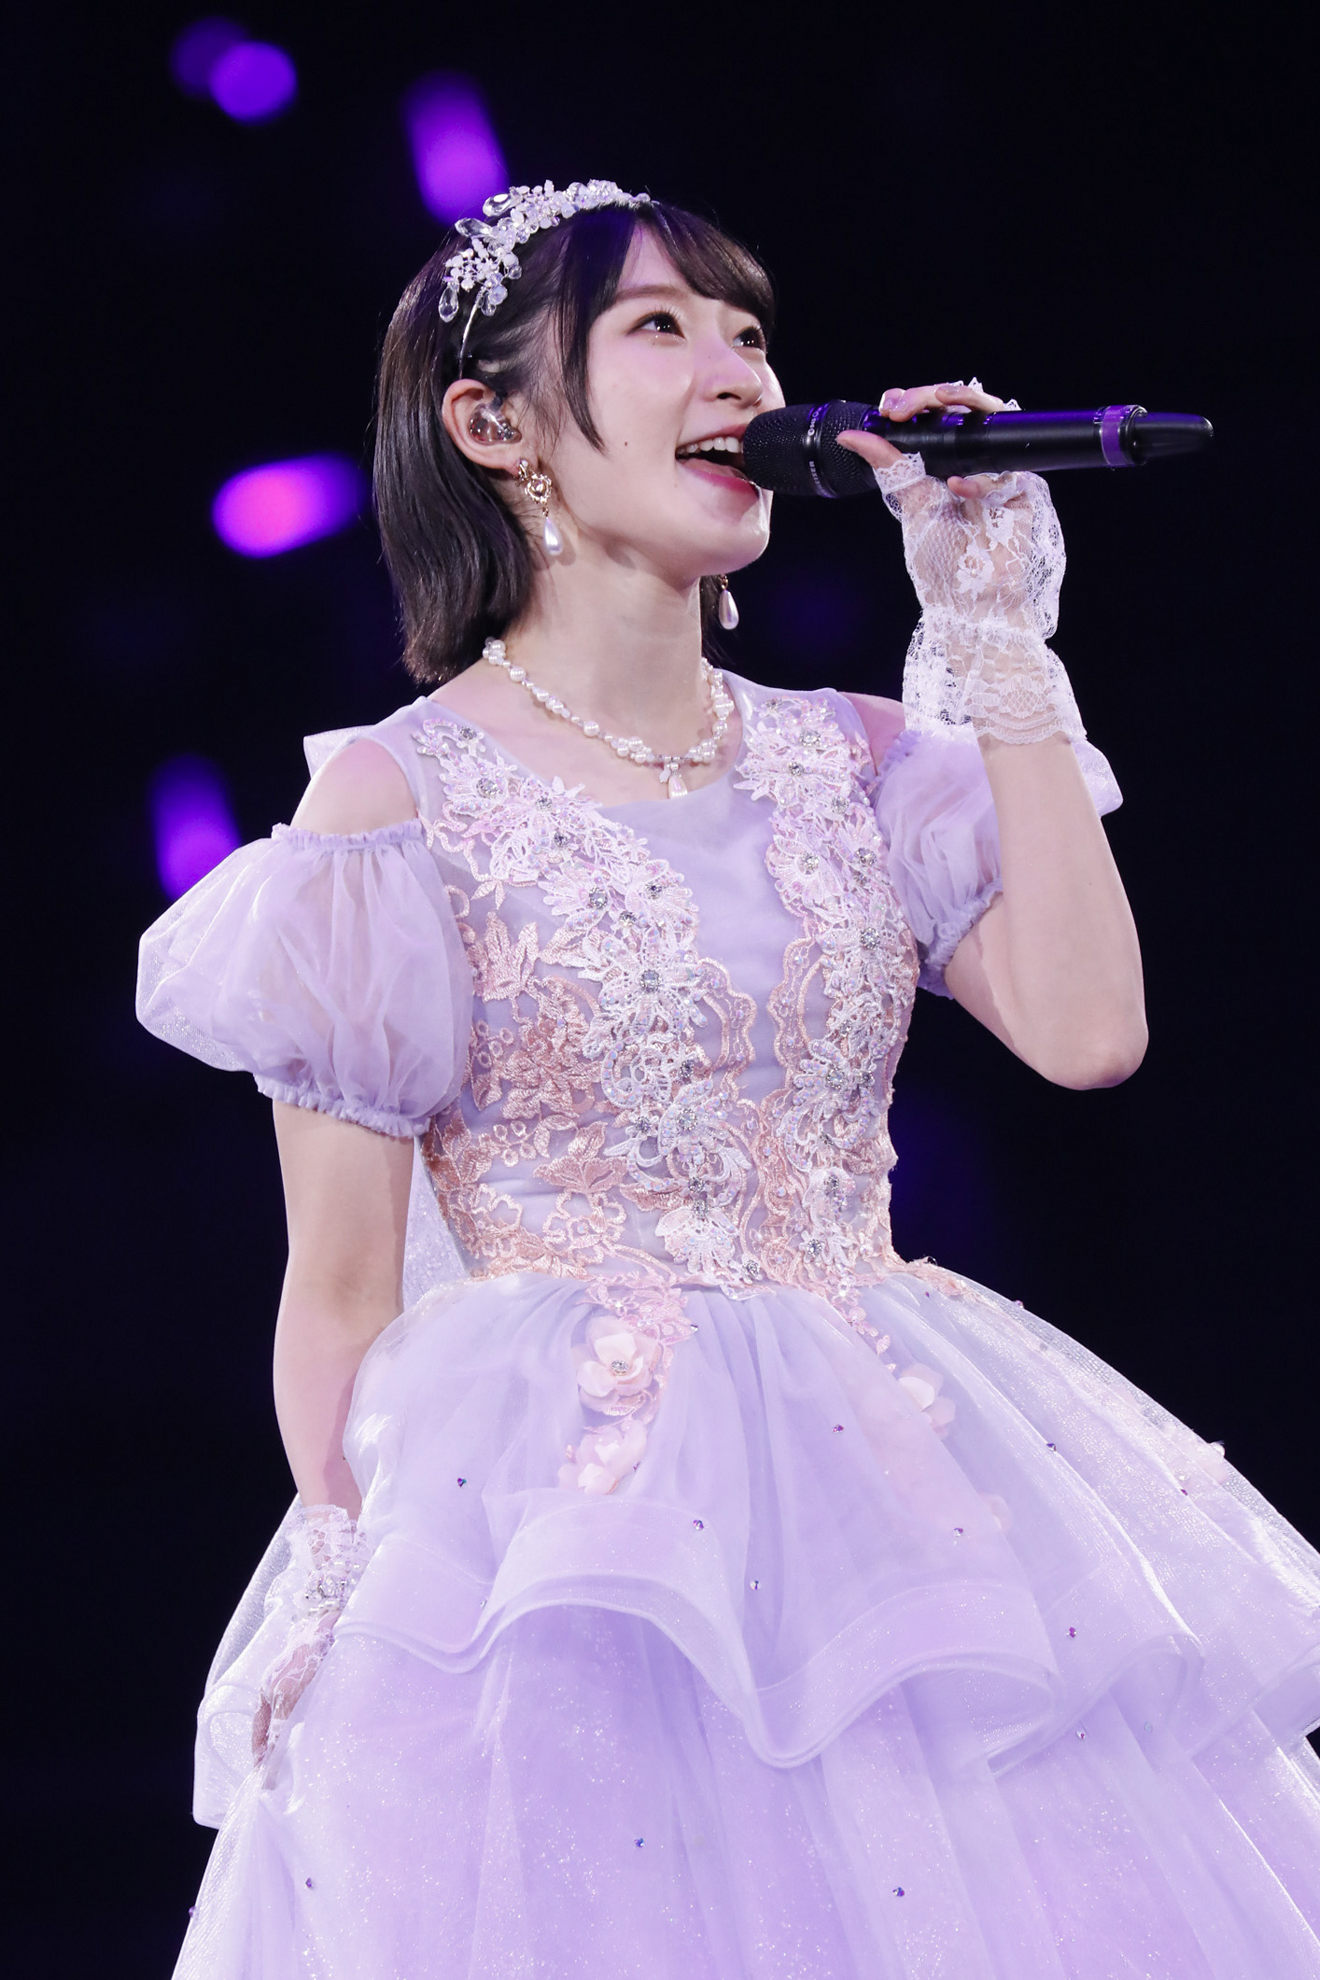 Karin Miyamoto graduates from Juice=Juice and Hello!Project, makes solo debut